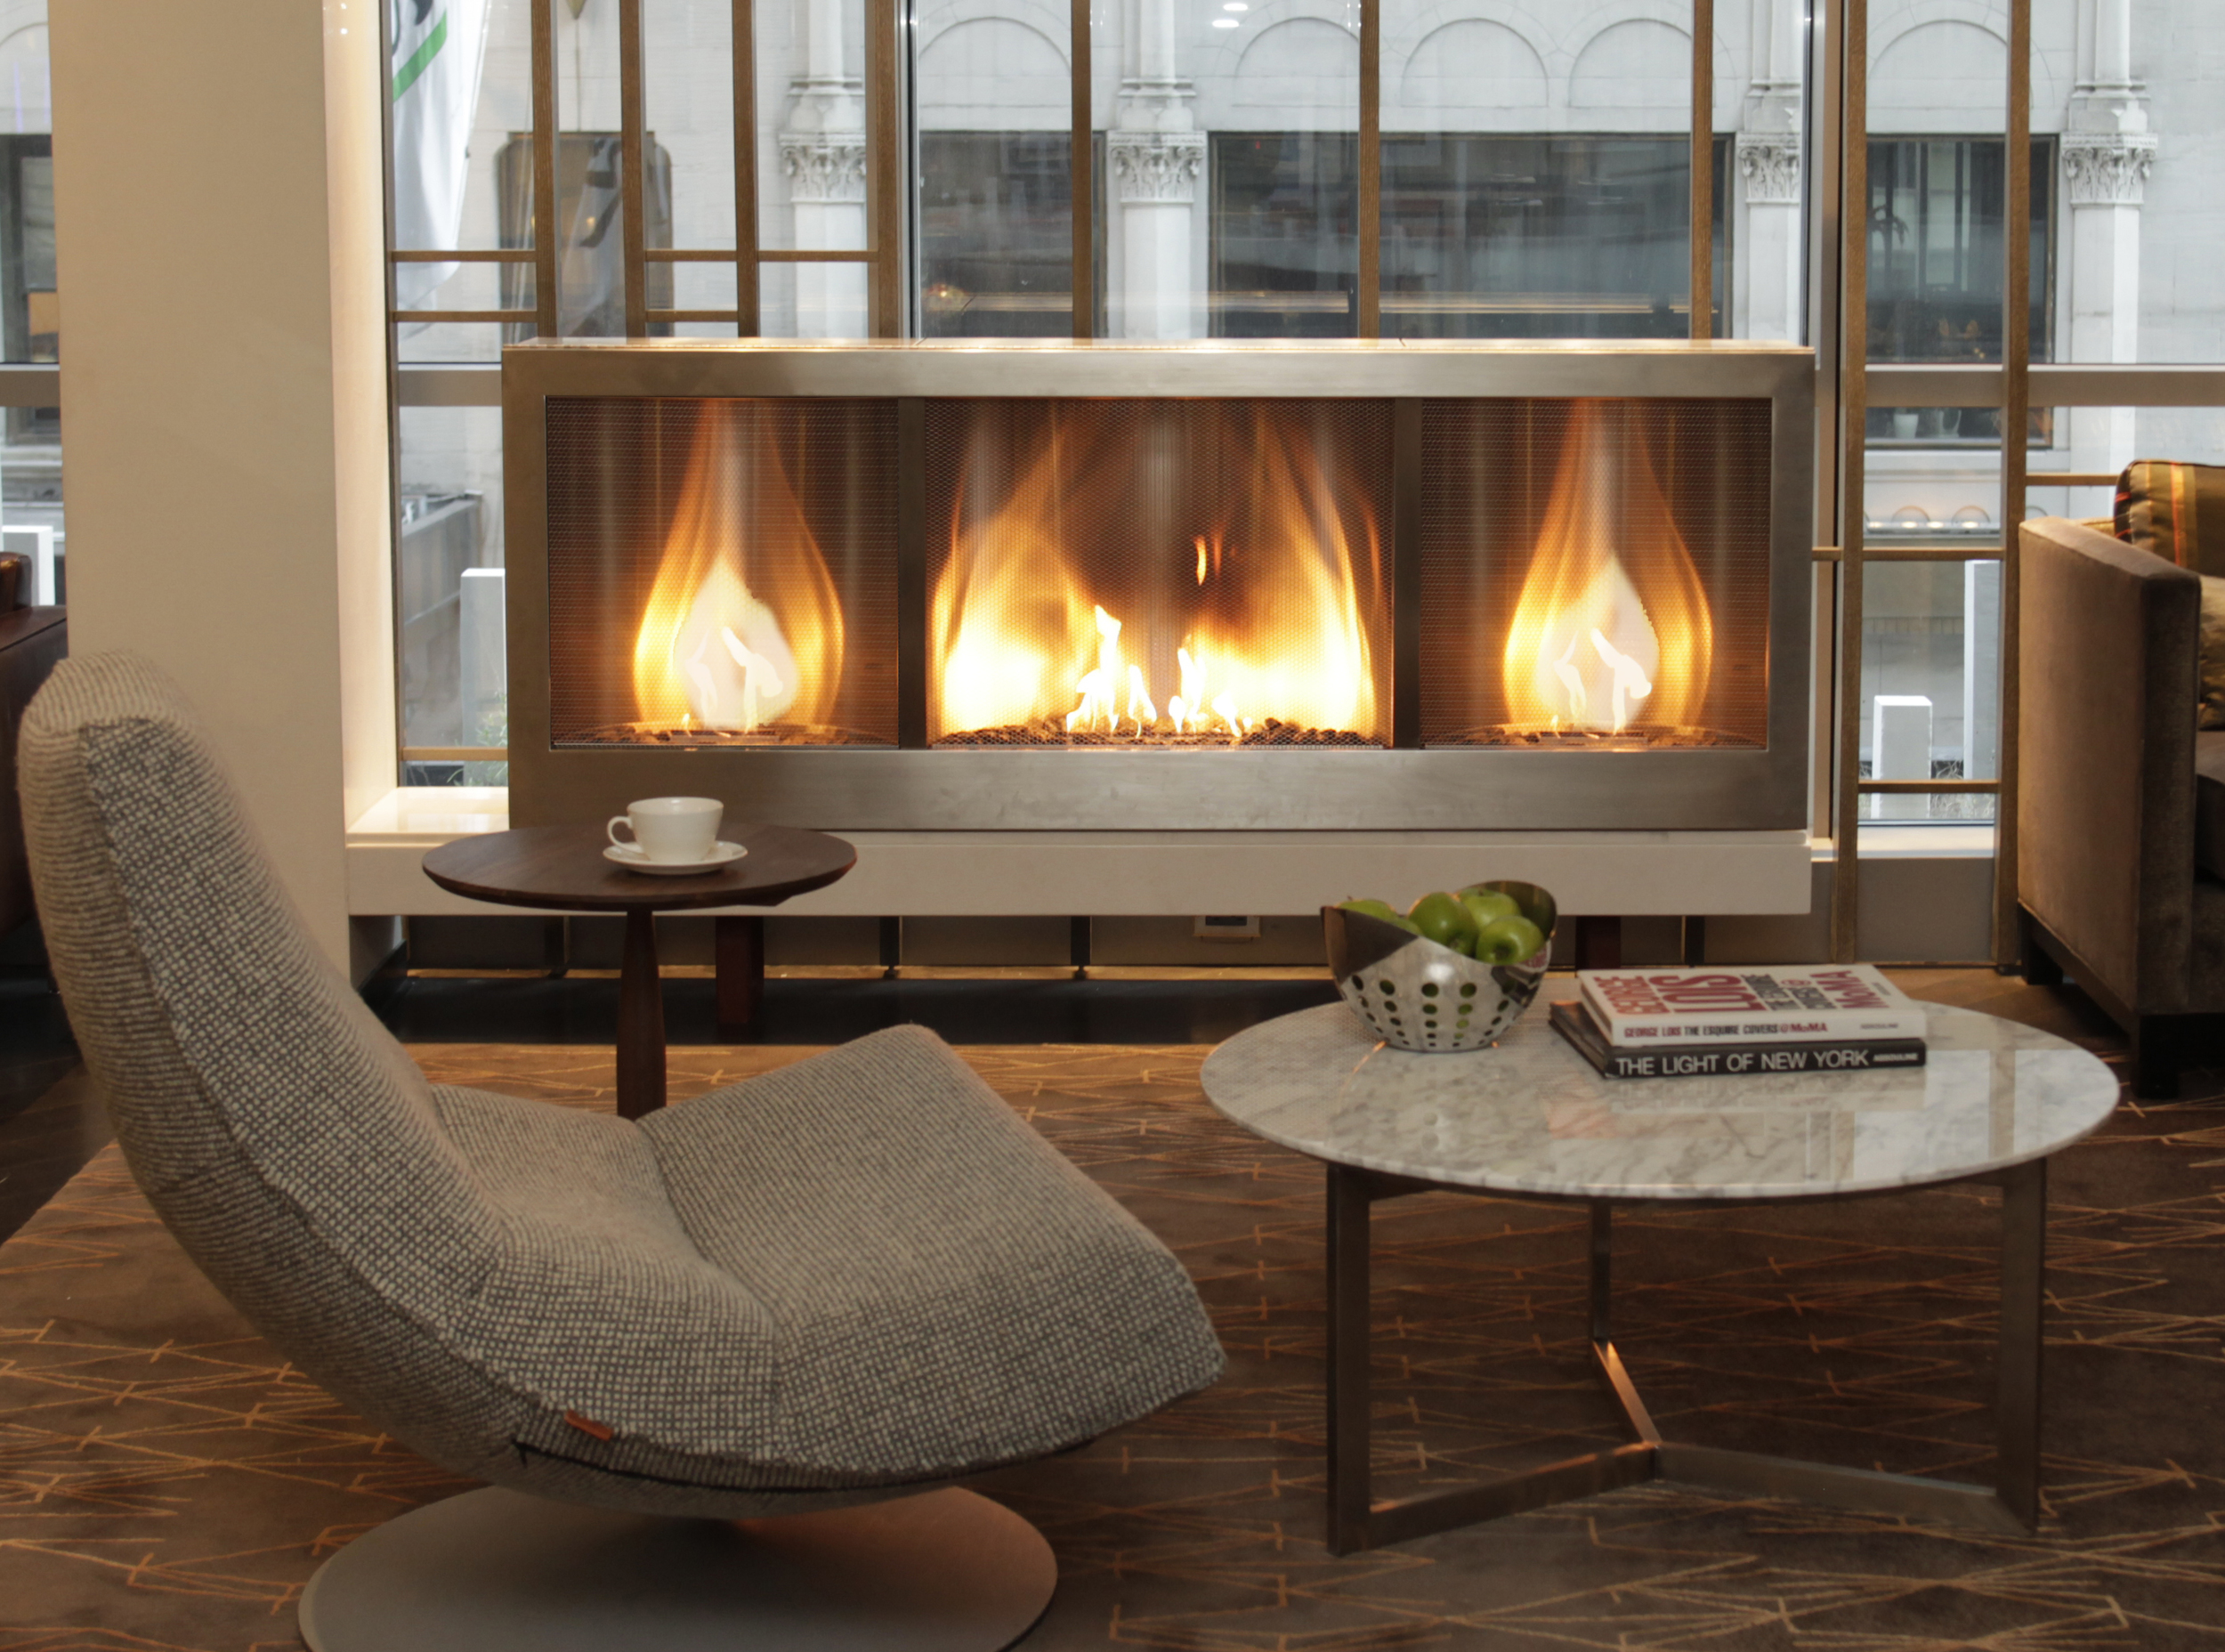 Innovation Home - Ventless Fireplace.jpg